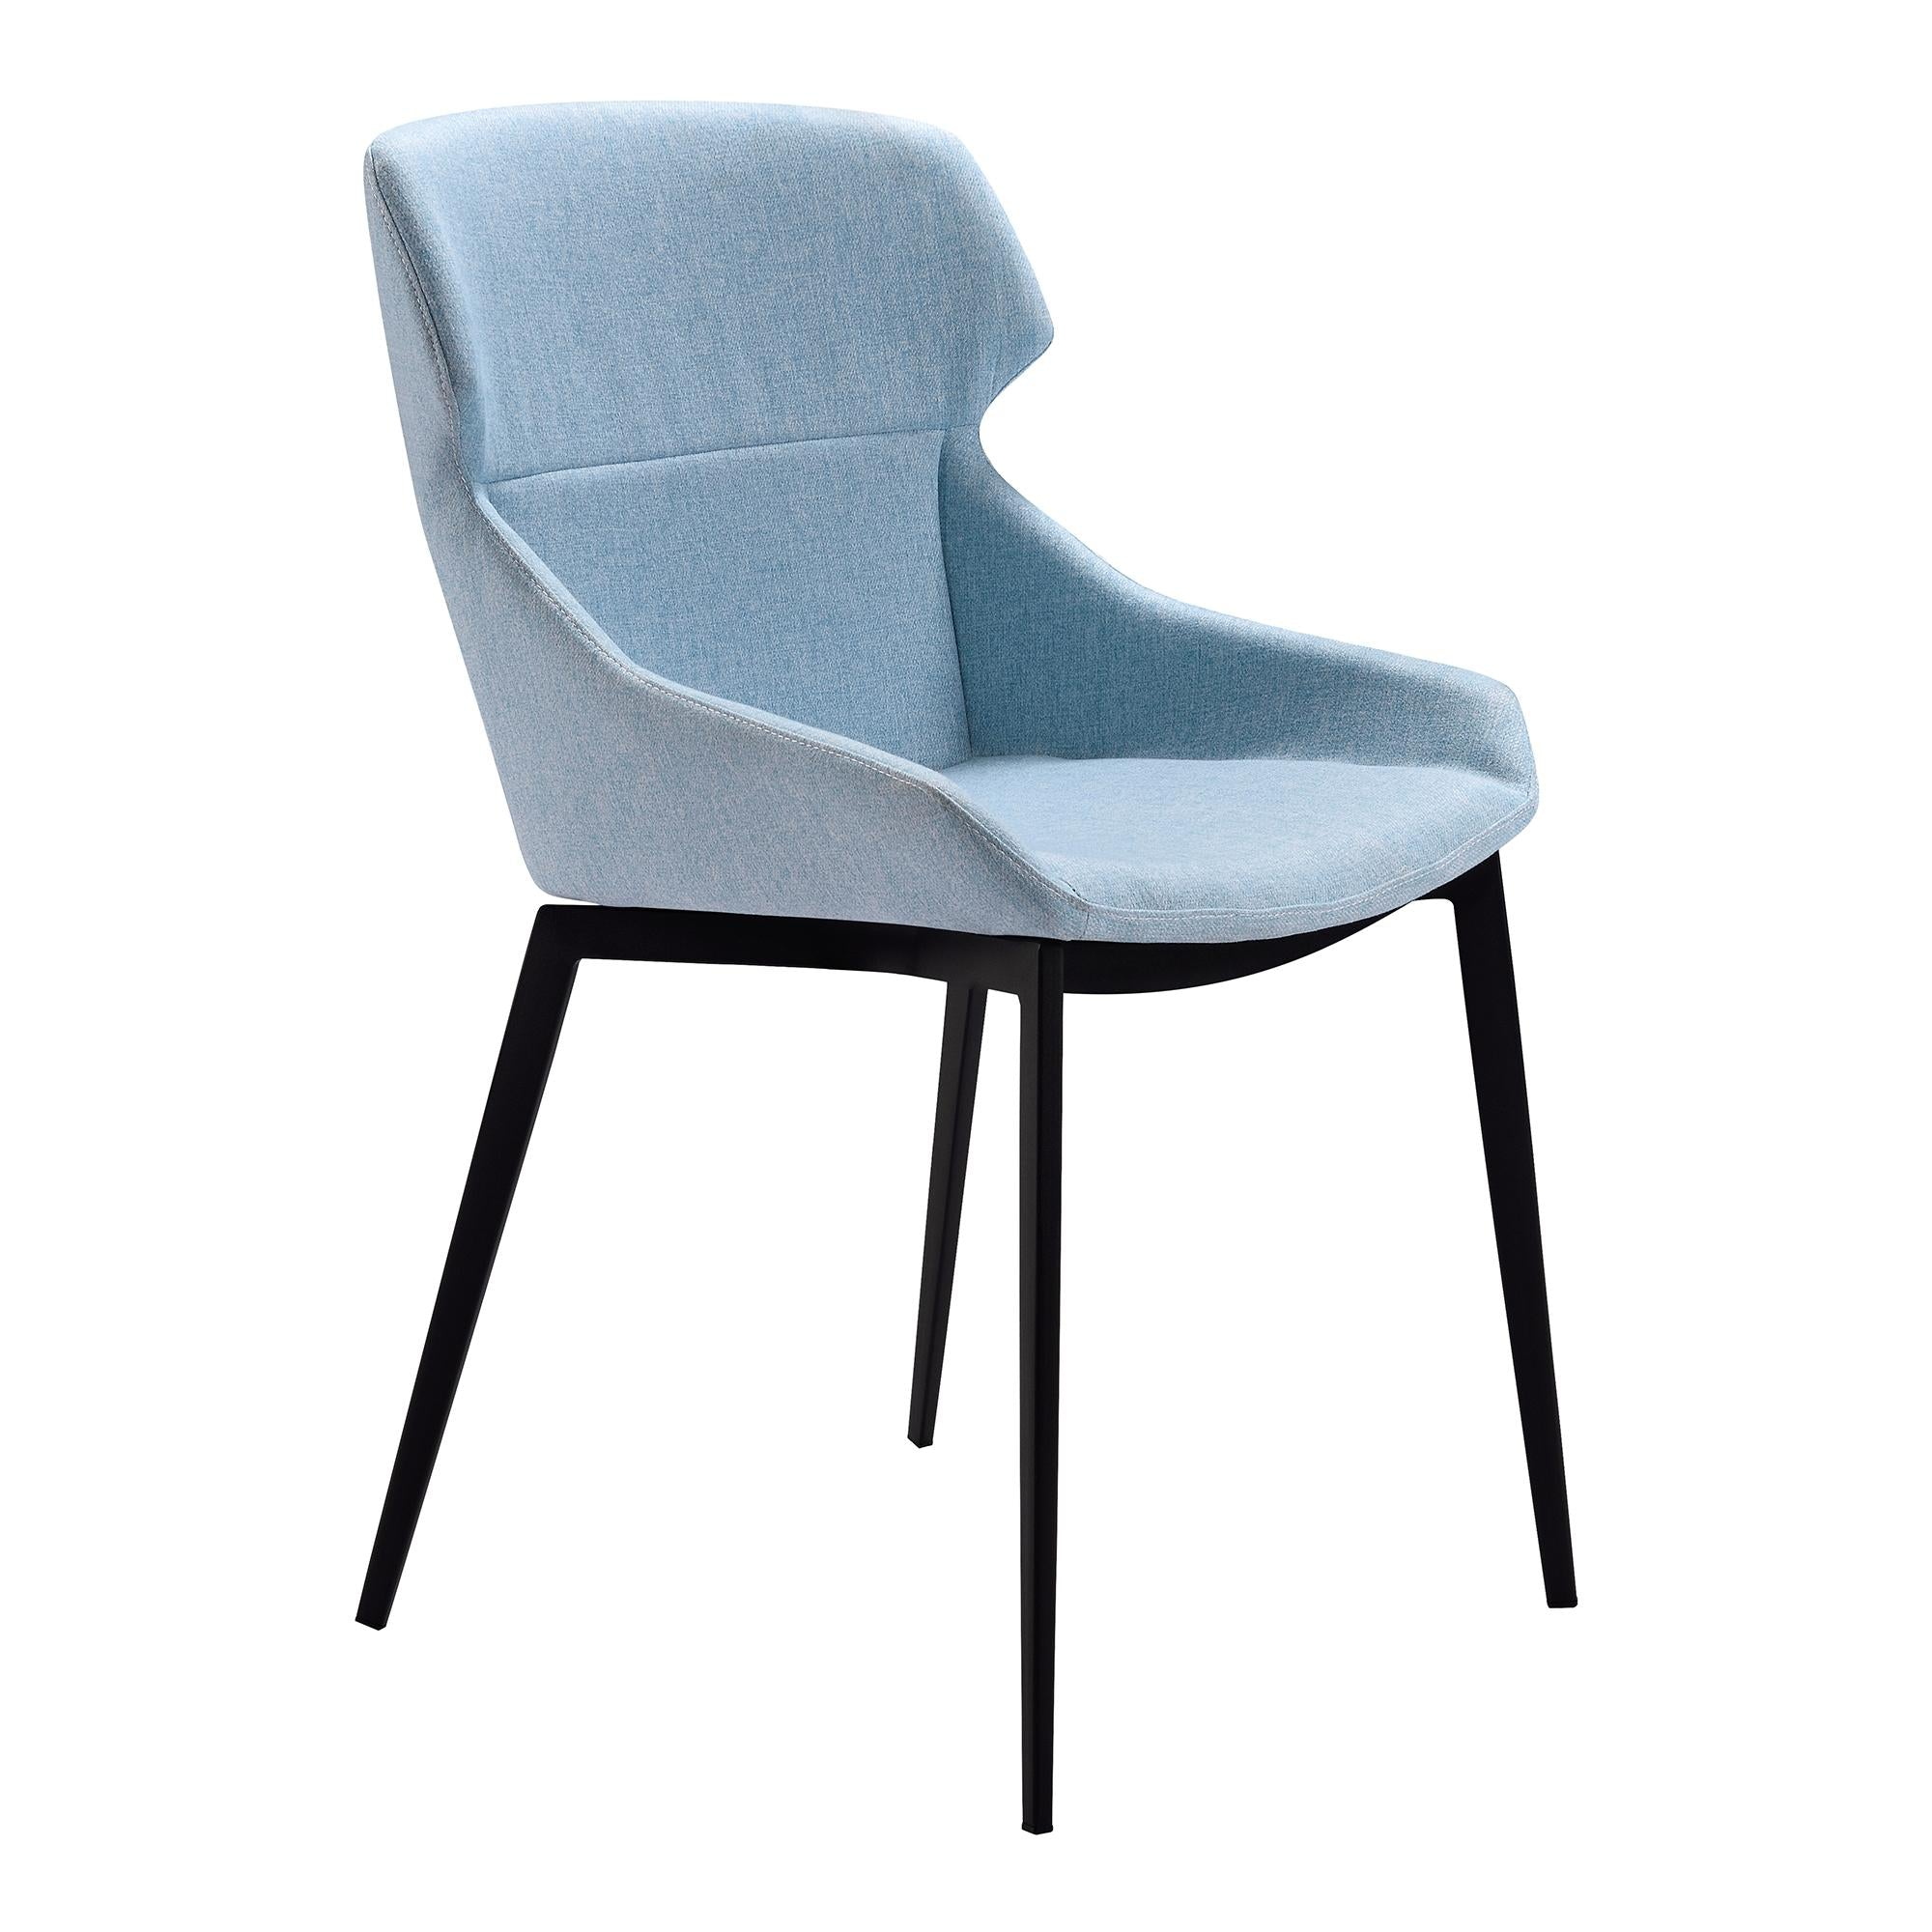 Kenna Modern Dining Chair in Matte Black Finish and Blue Fabric - Set of 2